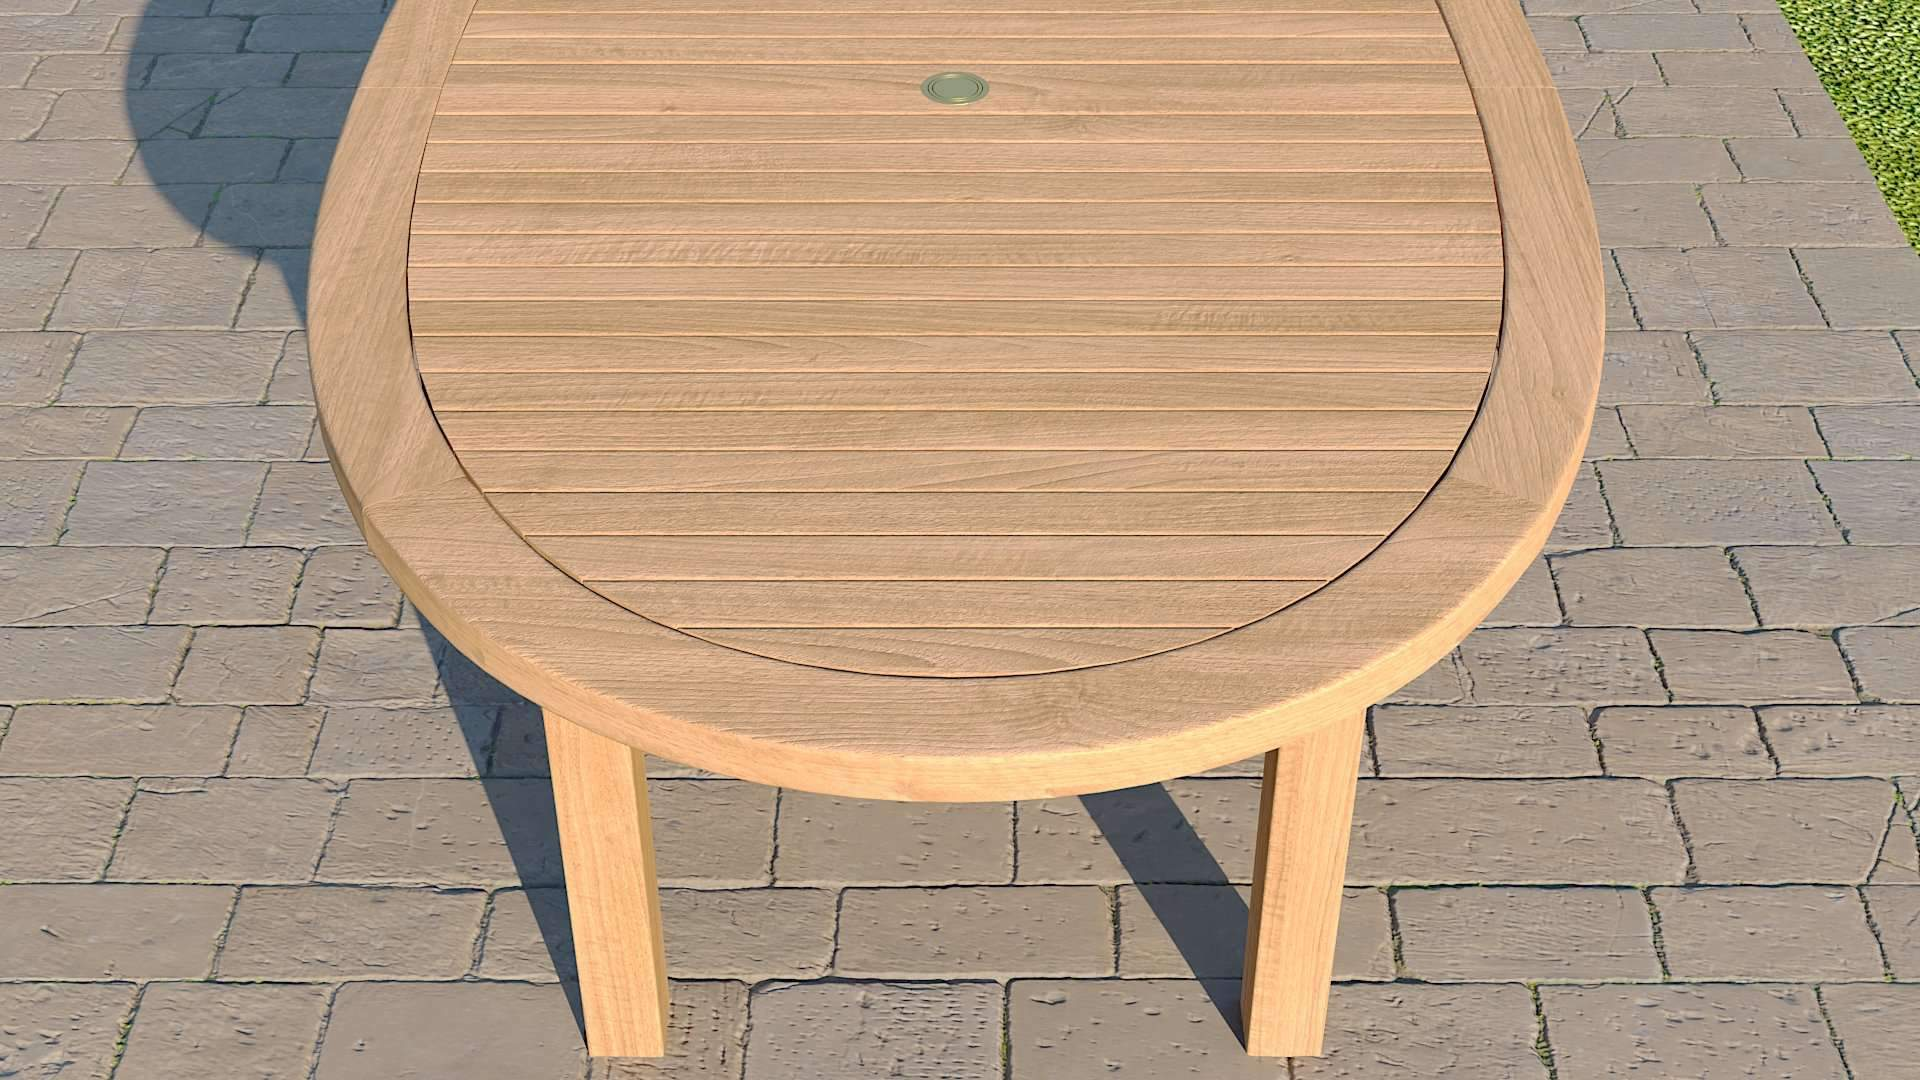 Teak Elliptical Garden Dining Table & 8 Winchester Chairs  - Chic Teak® | Luxury Teak Furniture